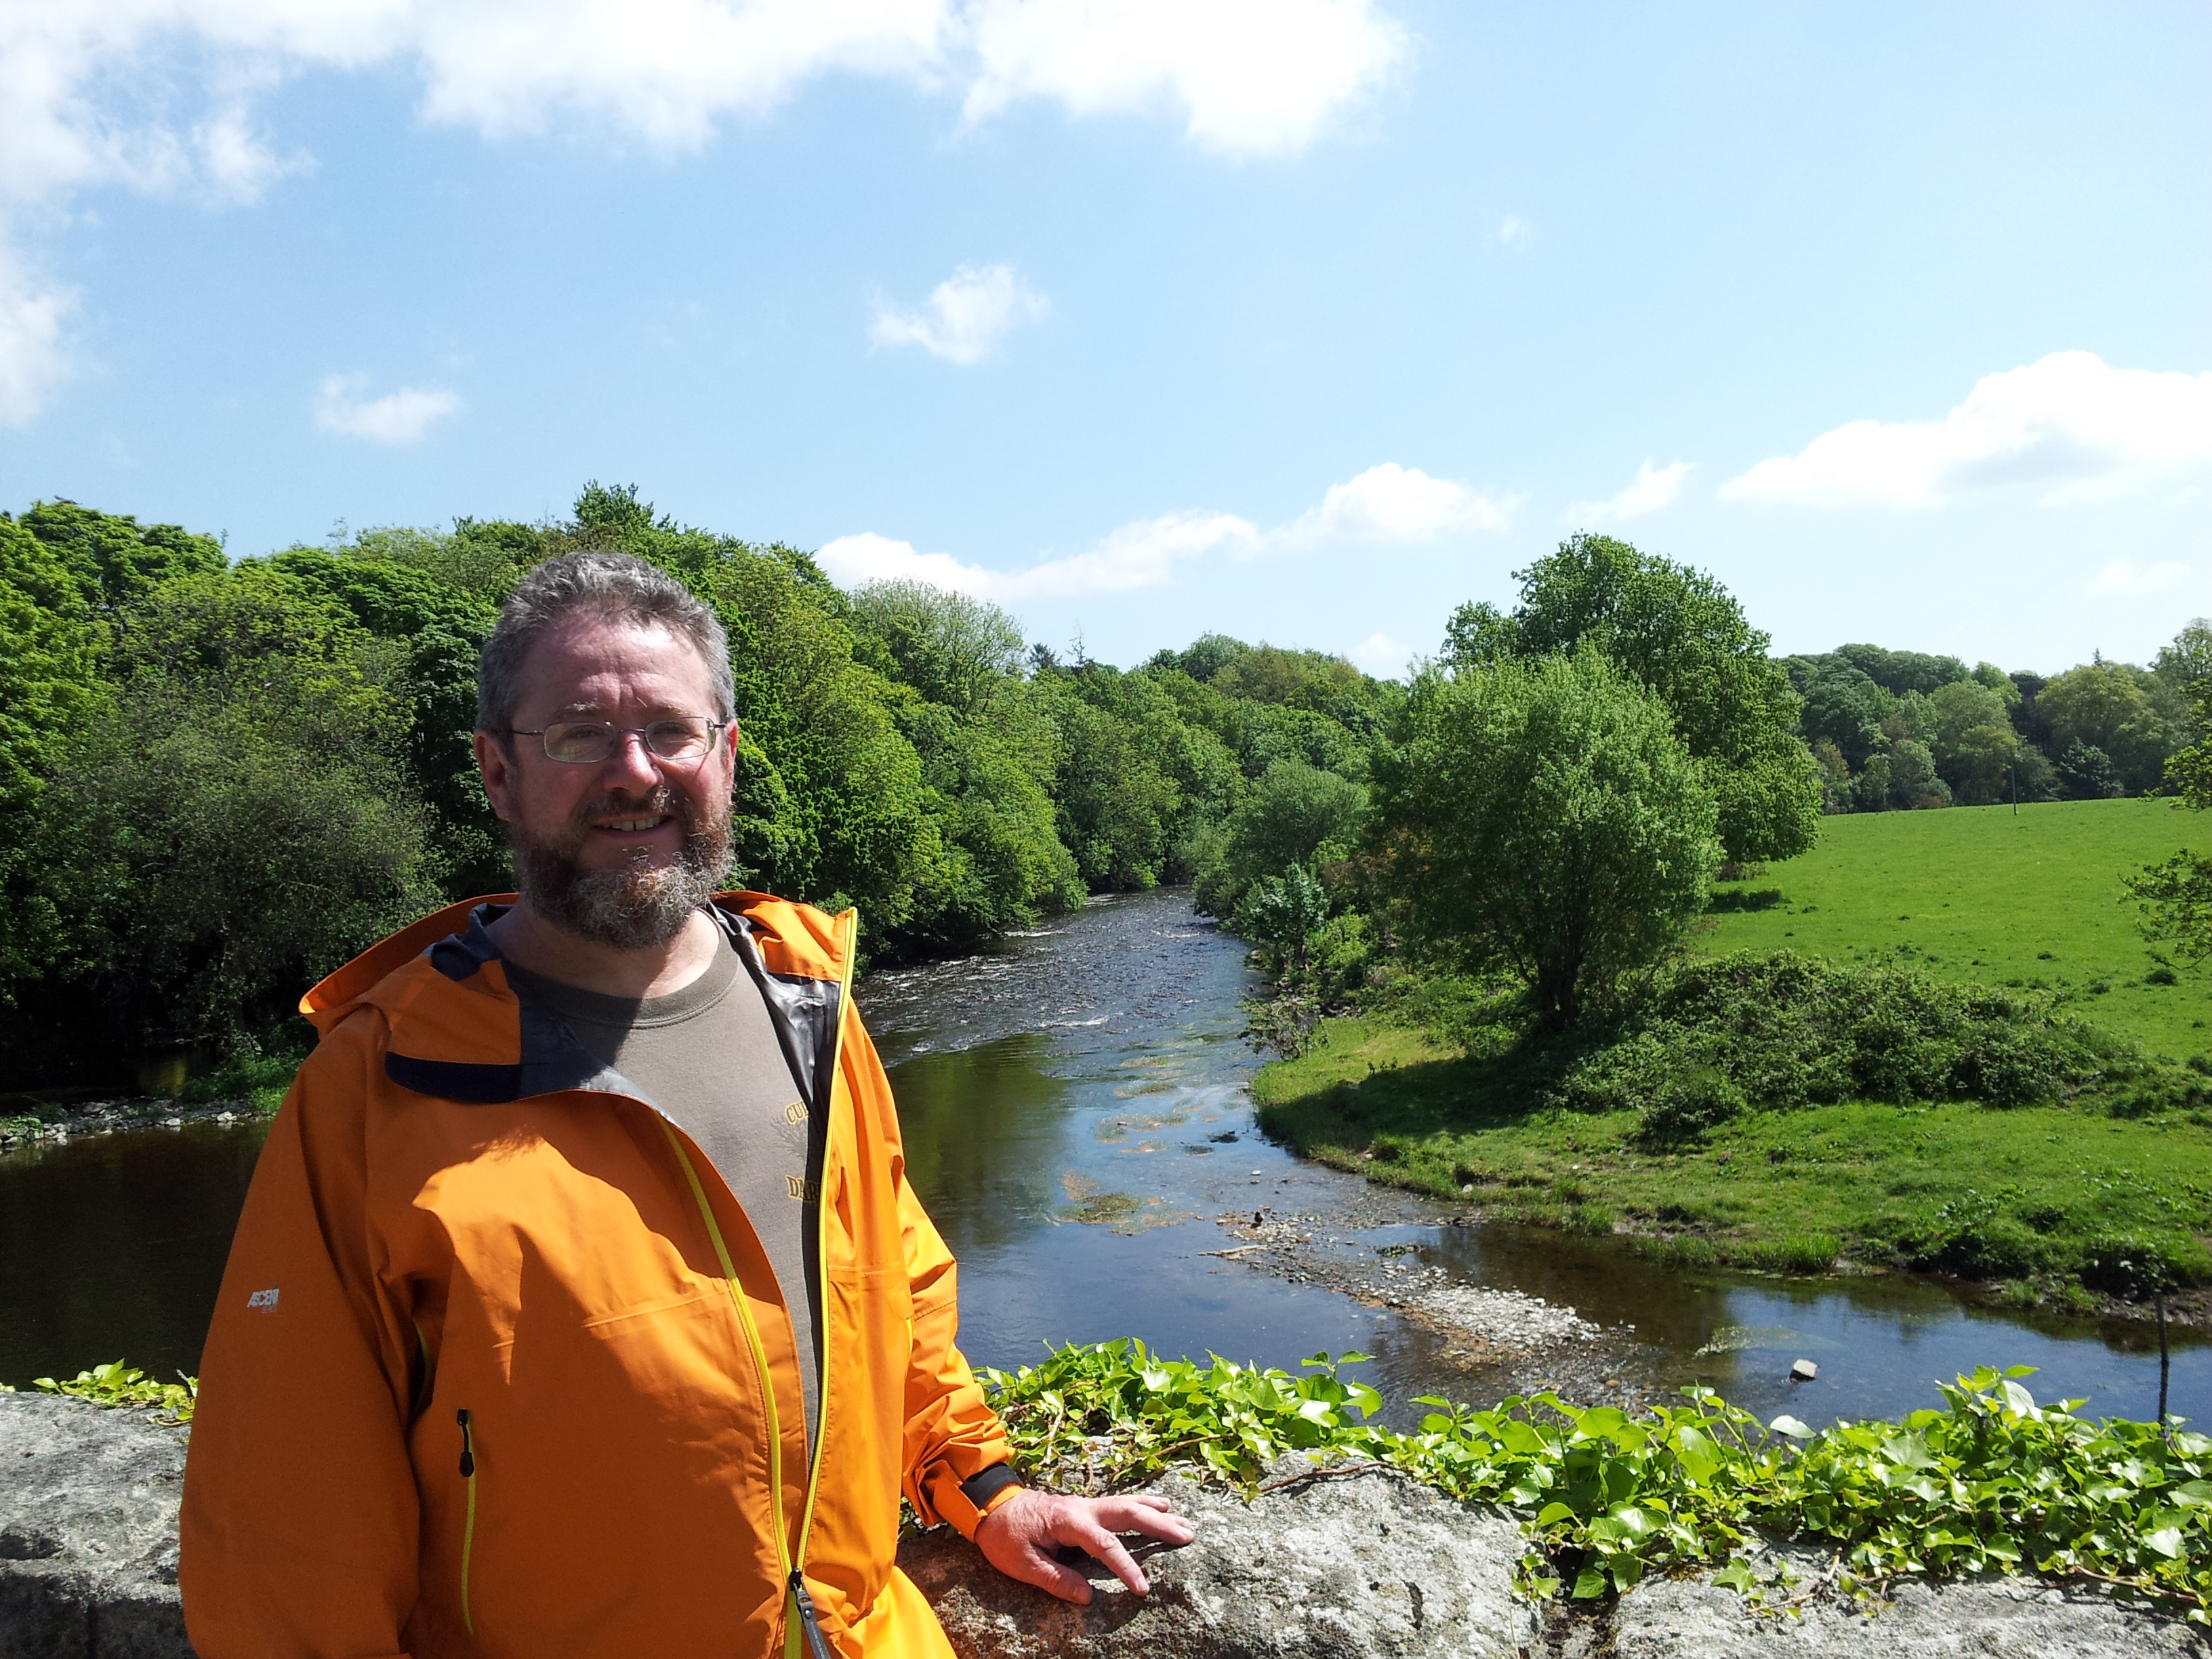 Me, with River Slaney